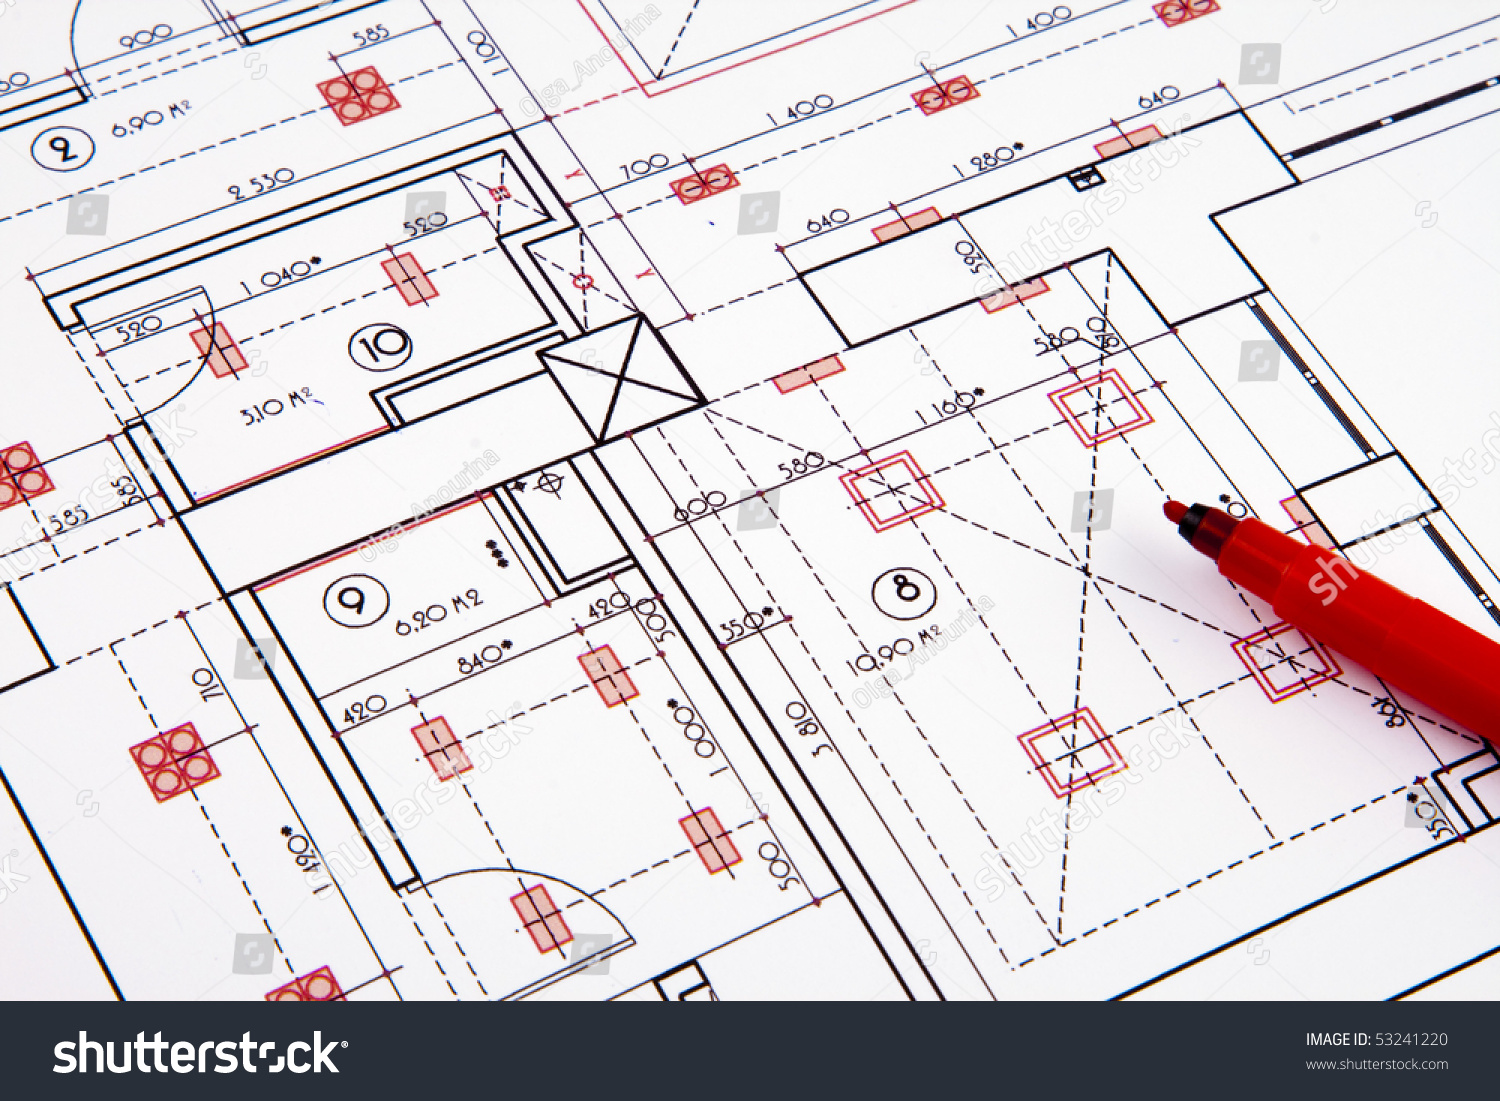 electrical drawing house wiring the wiring diagram electrical drawing home run vidim wiring diagram electrical drawing